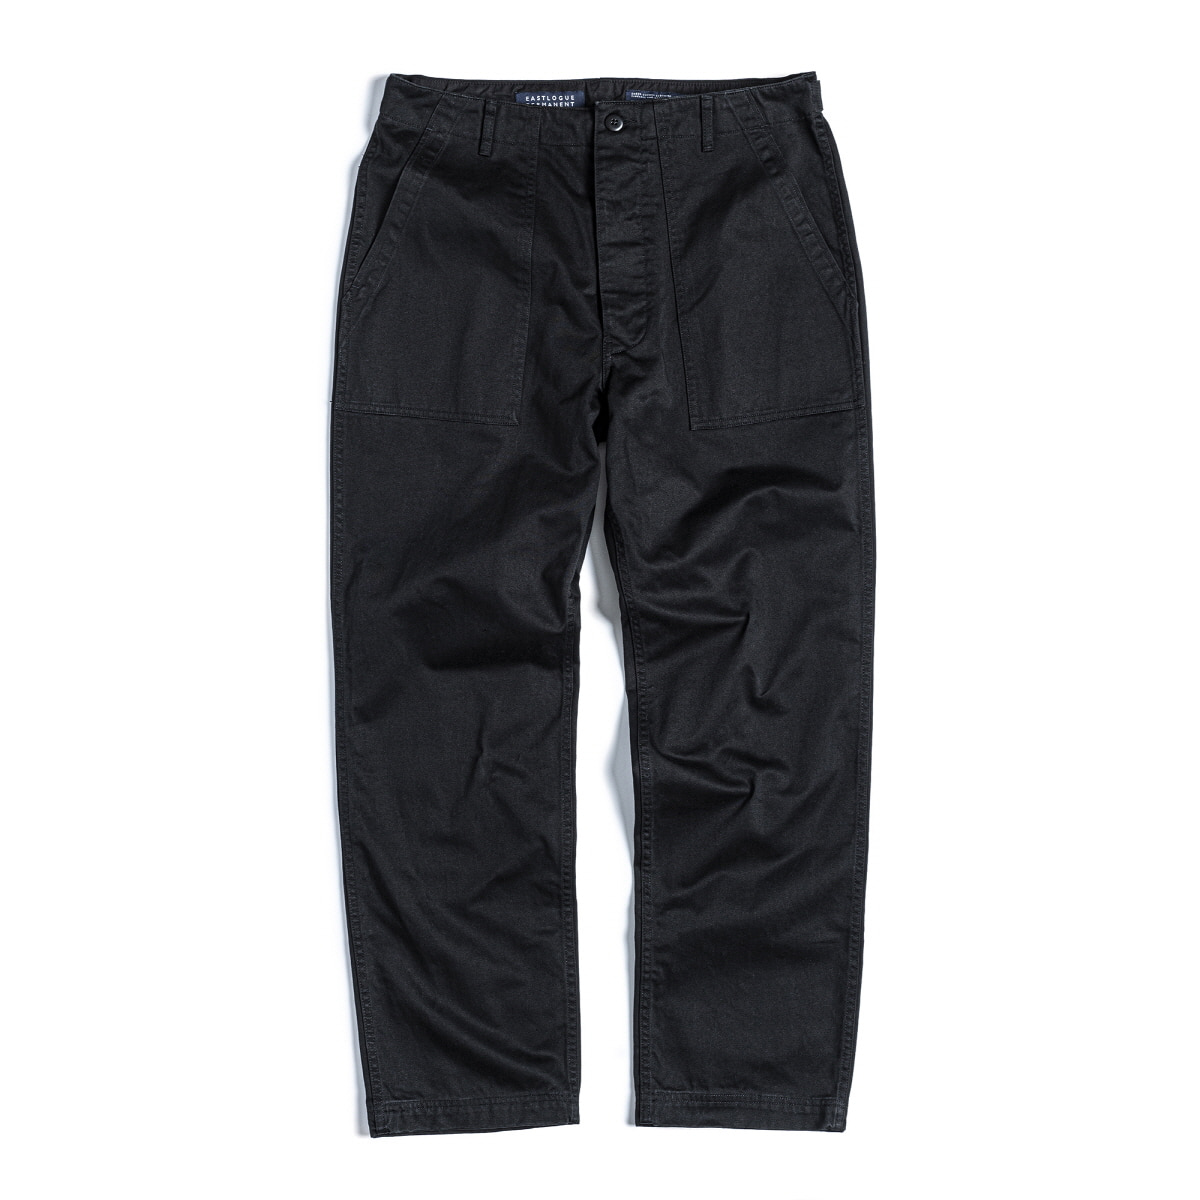 FATIGUE PANTS - BLACK BACK SATIN